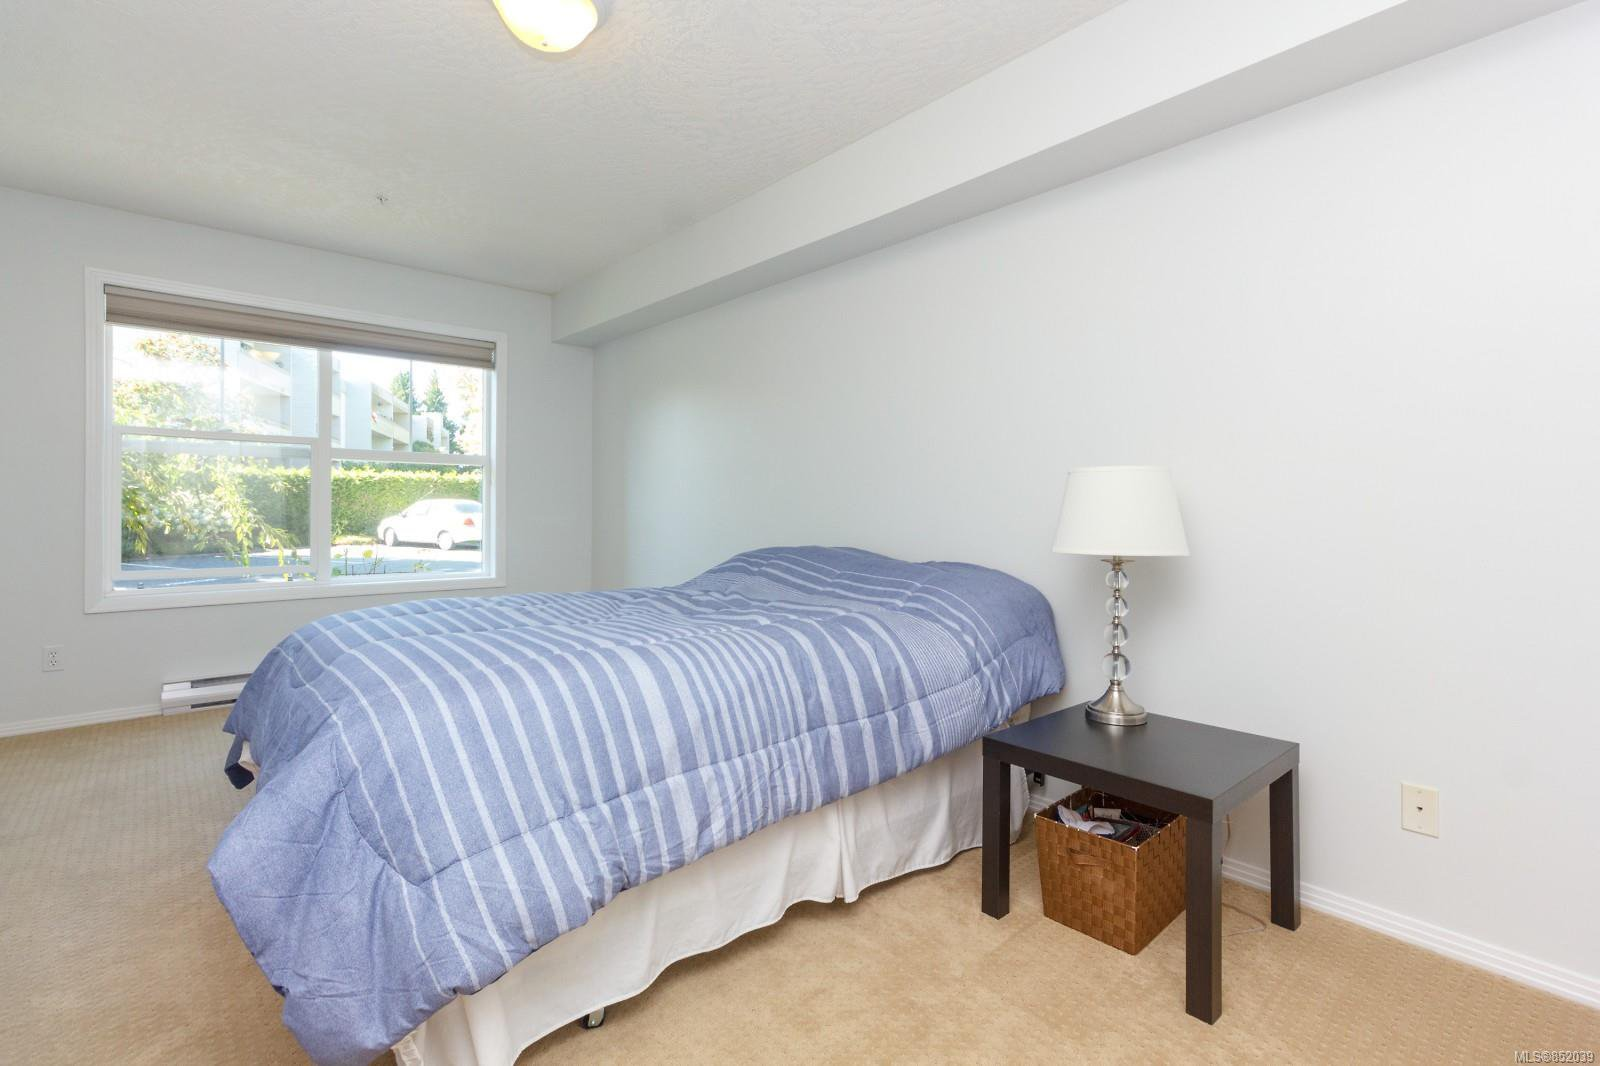 Photo 14: Photos: 109 1240 Verdier Ave in : CS Brentwood Bay Condo for sale (Central Saanich)  : MLS®# 852039